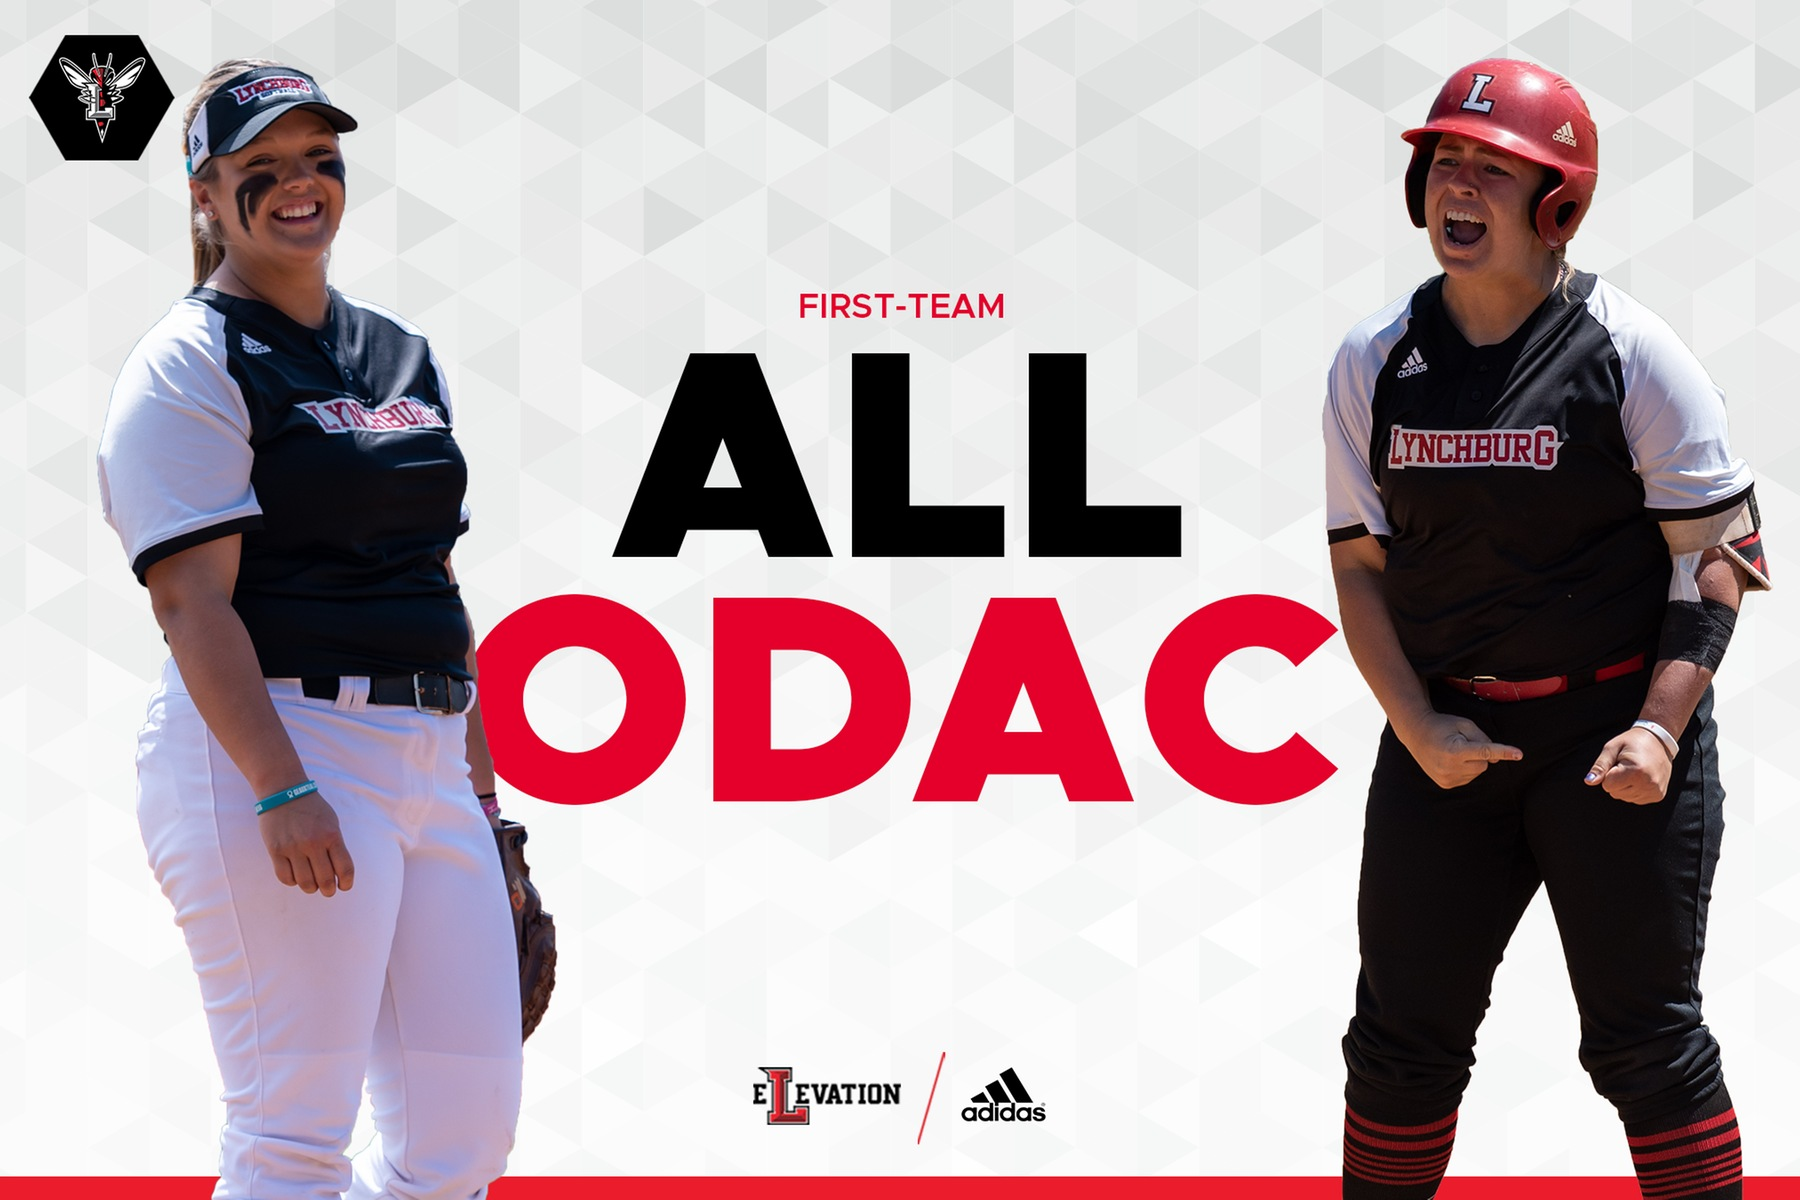 All-ODAC softball image with white background and cutouts of Mabry and Chitwood playing the game